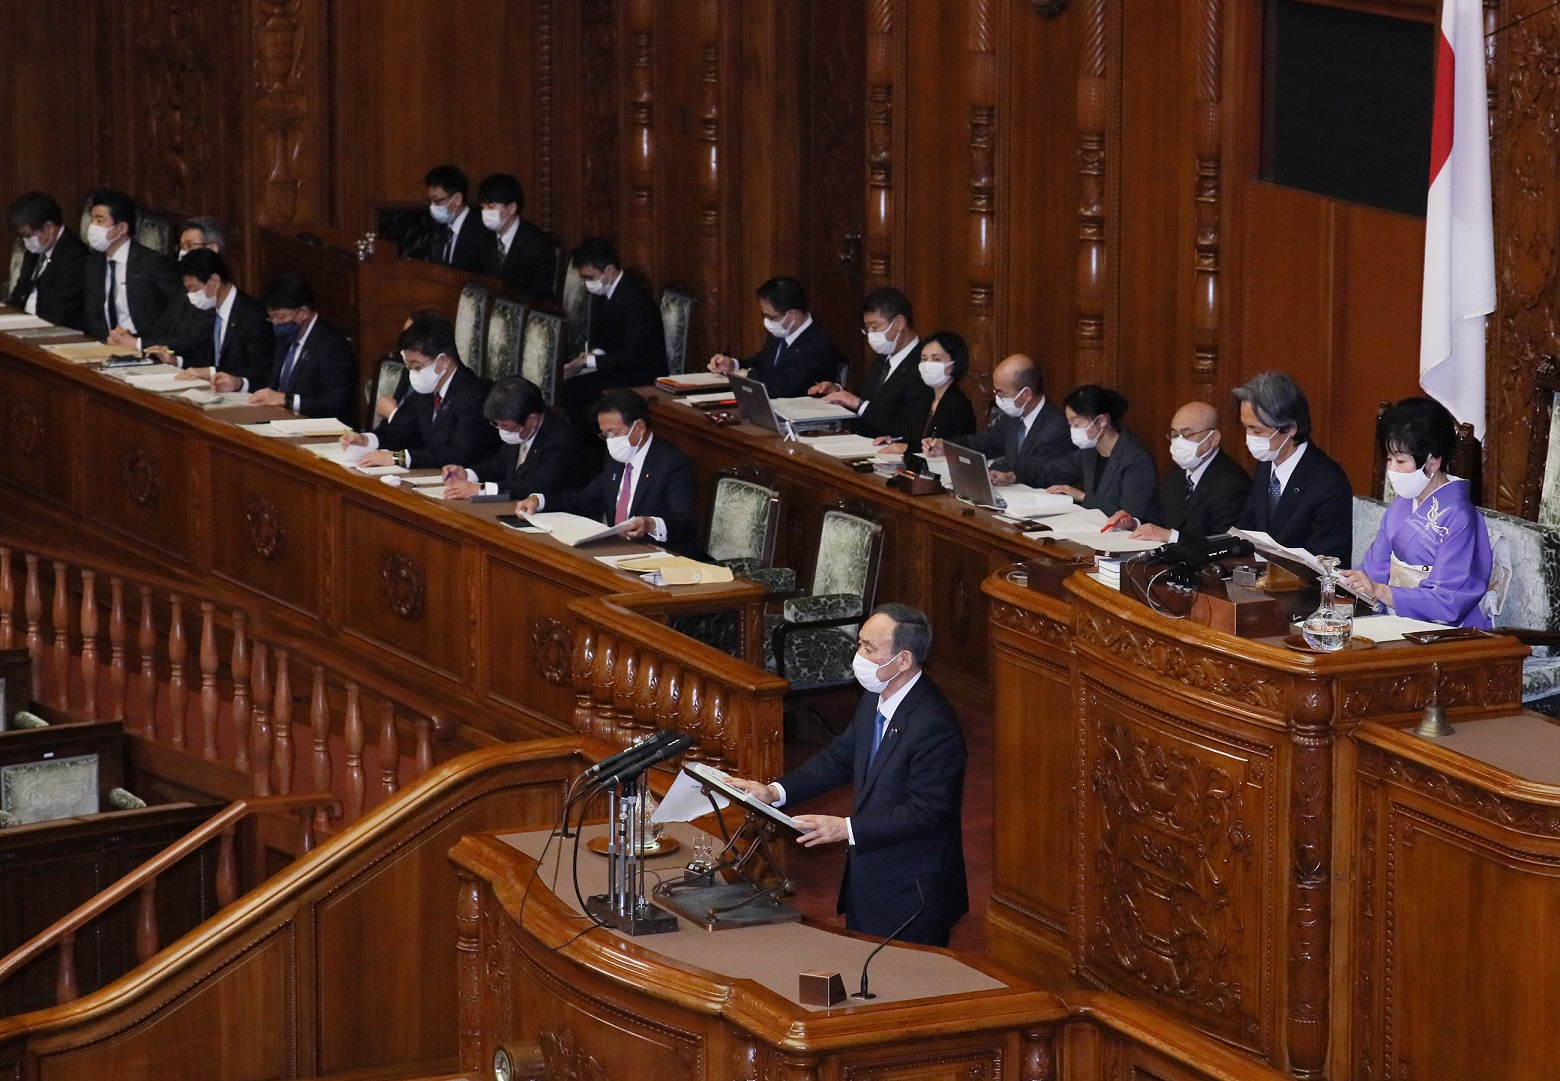 Photograph of the Prime Minister delivering a policy speech during the plenary session of the House of Councillors (6)